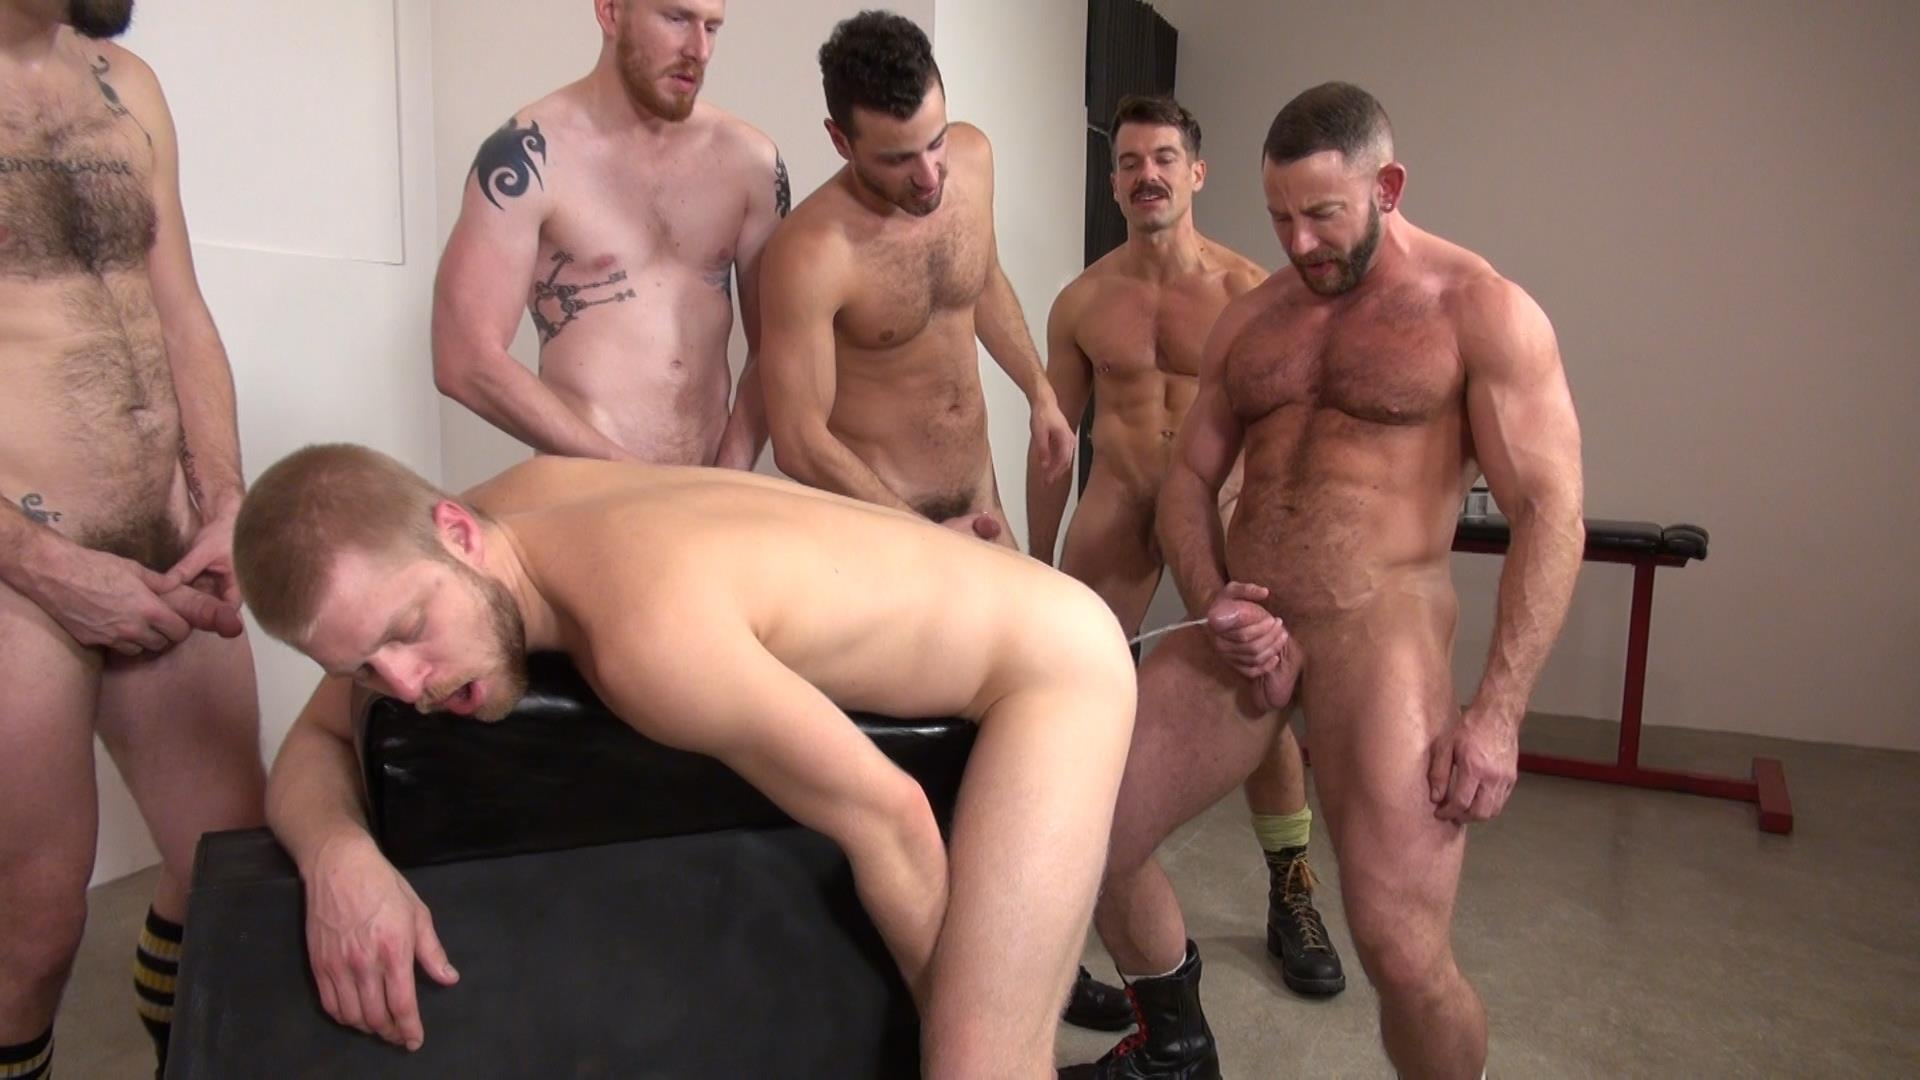 Gay bathroom orgy with well hung hunks